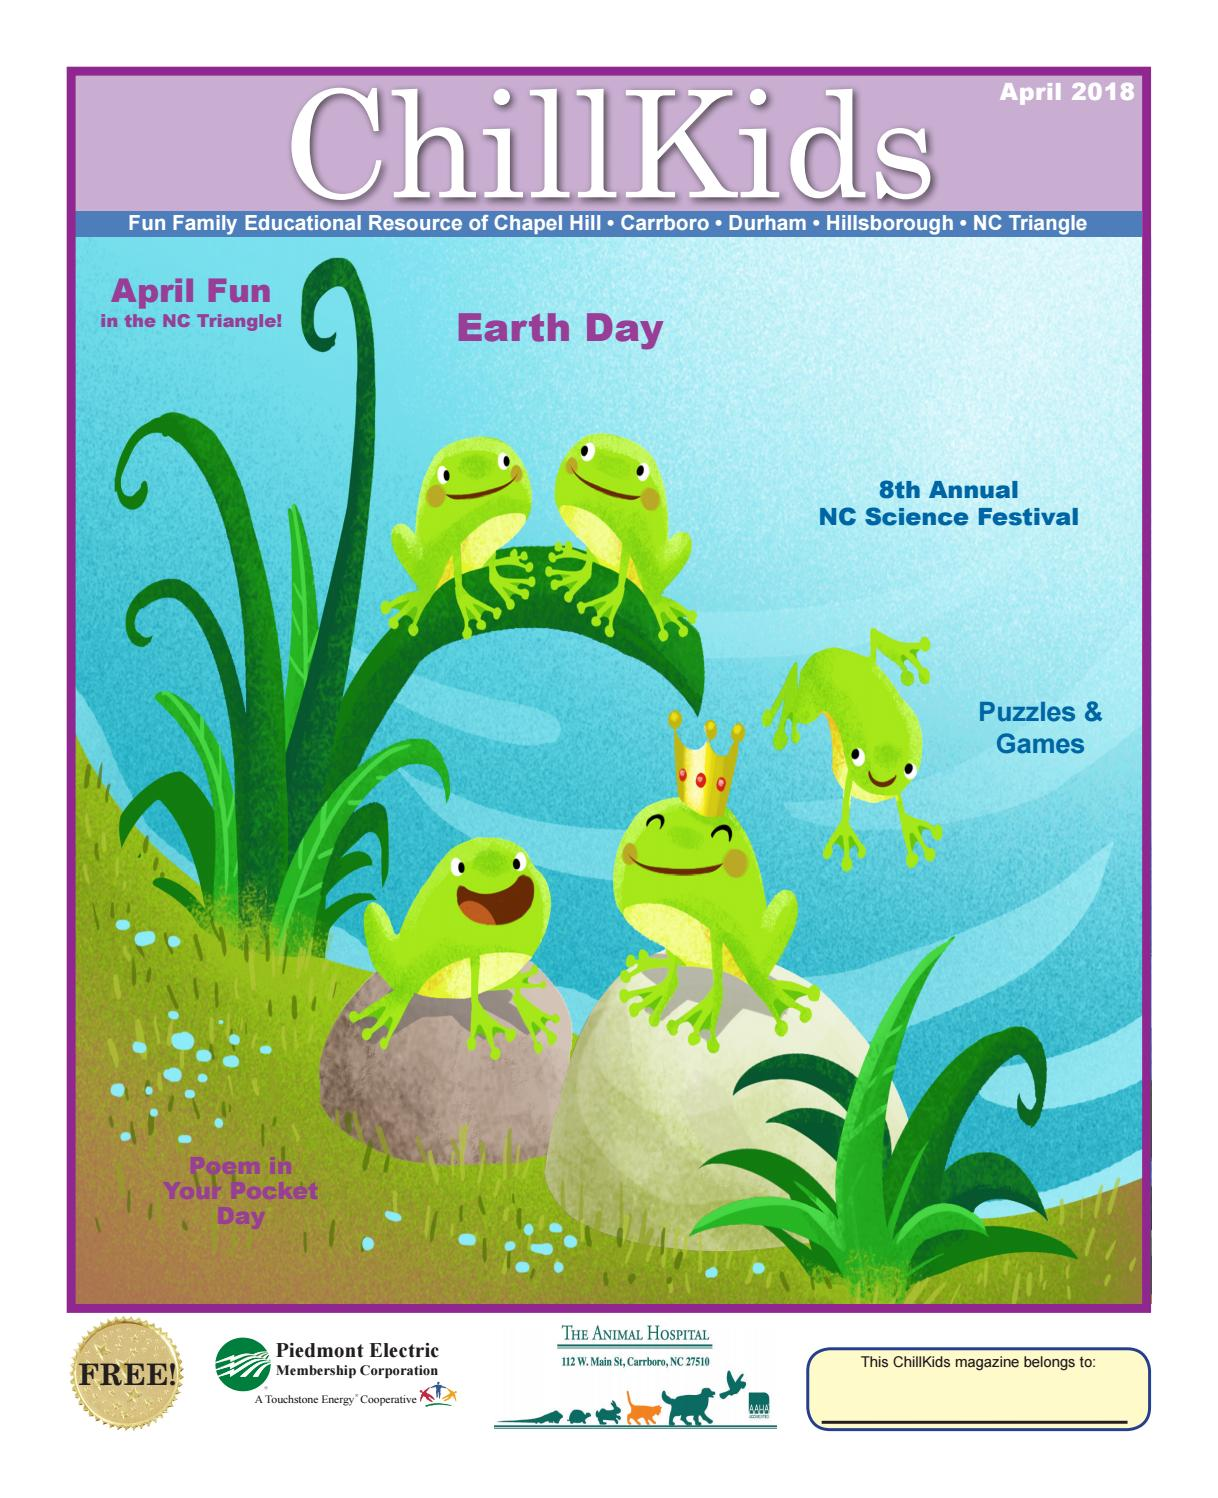 chillkids 2018 04 family magazine nc triangle april 2018 by chill kids issuu - 30 Limerick Examples Funny Cooperative